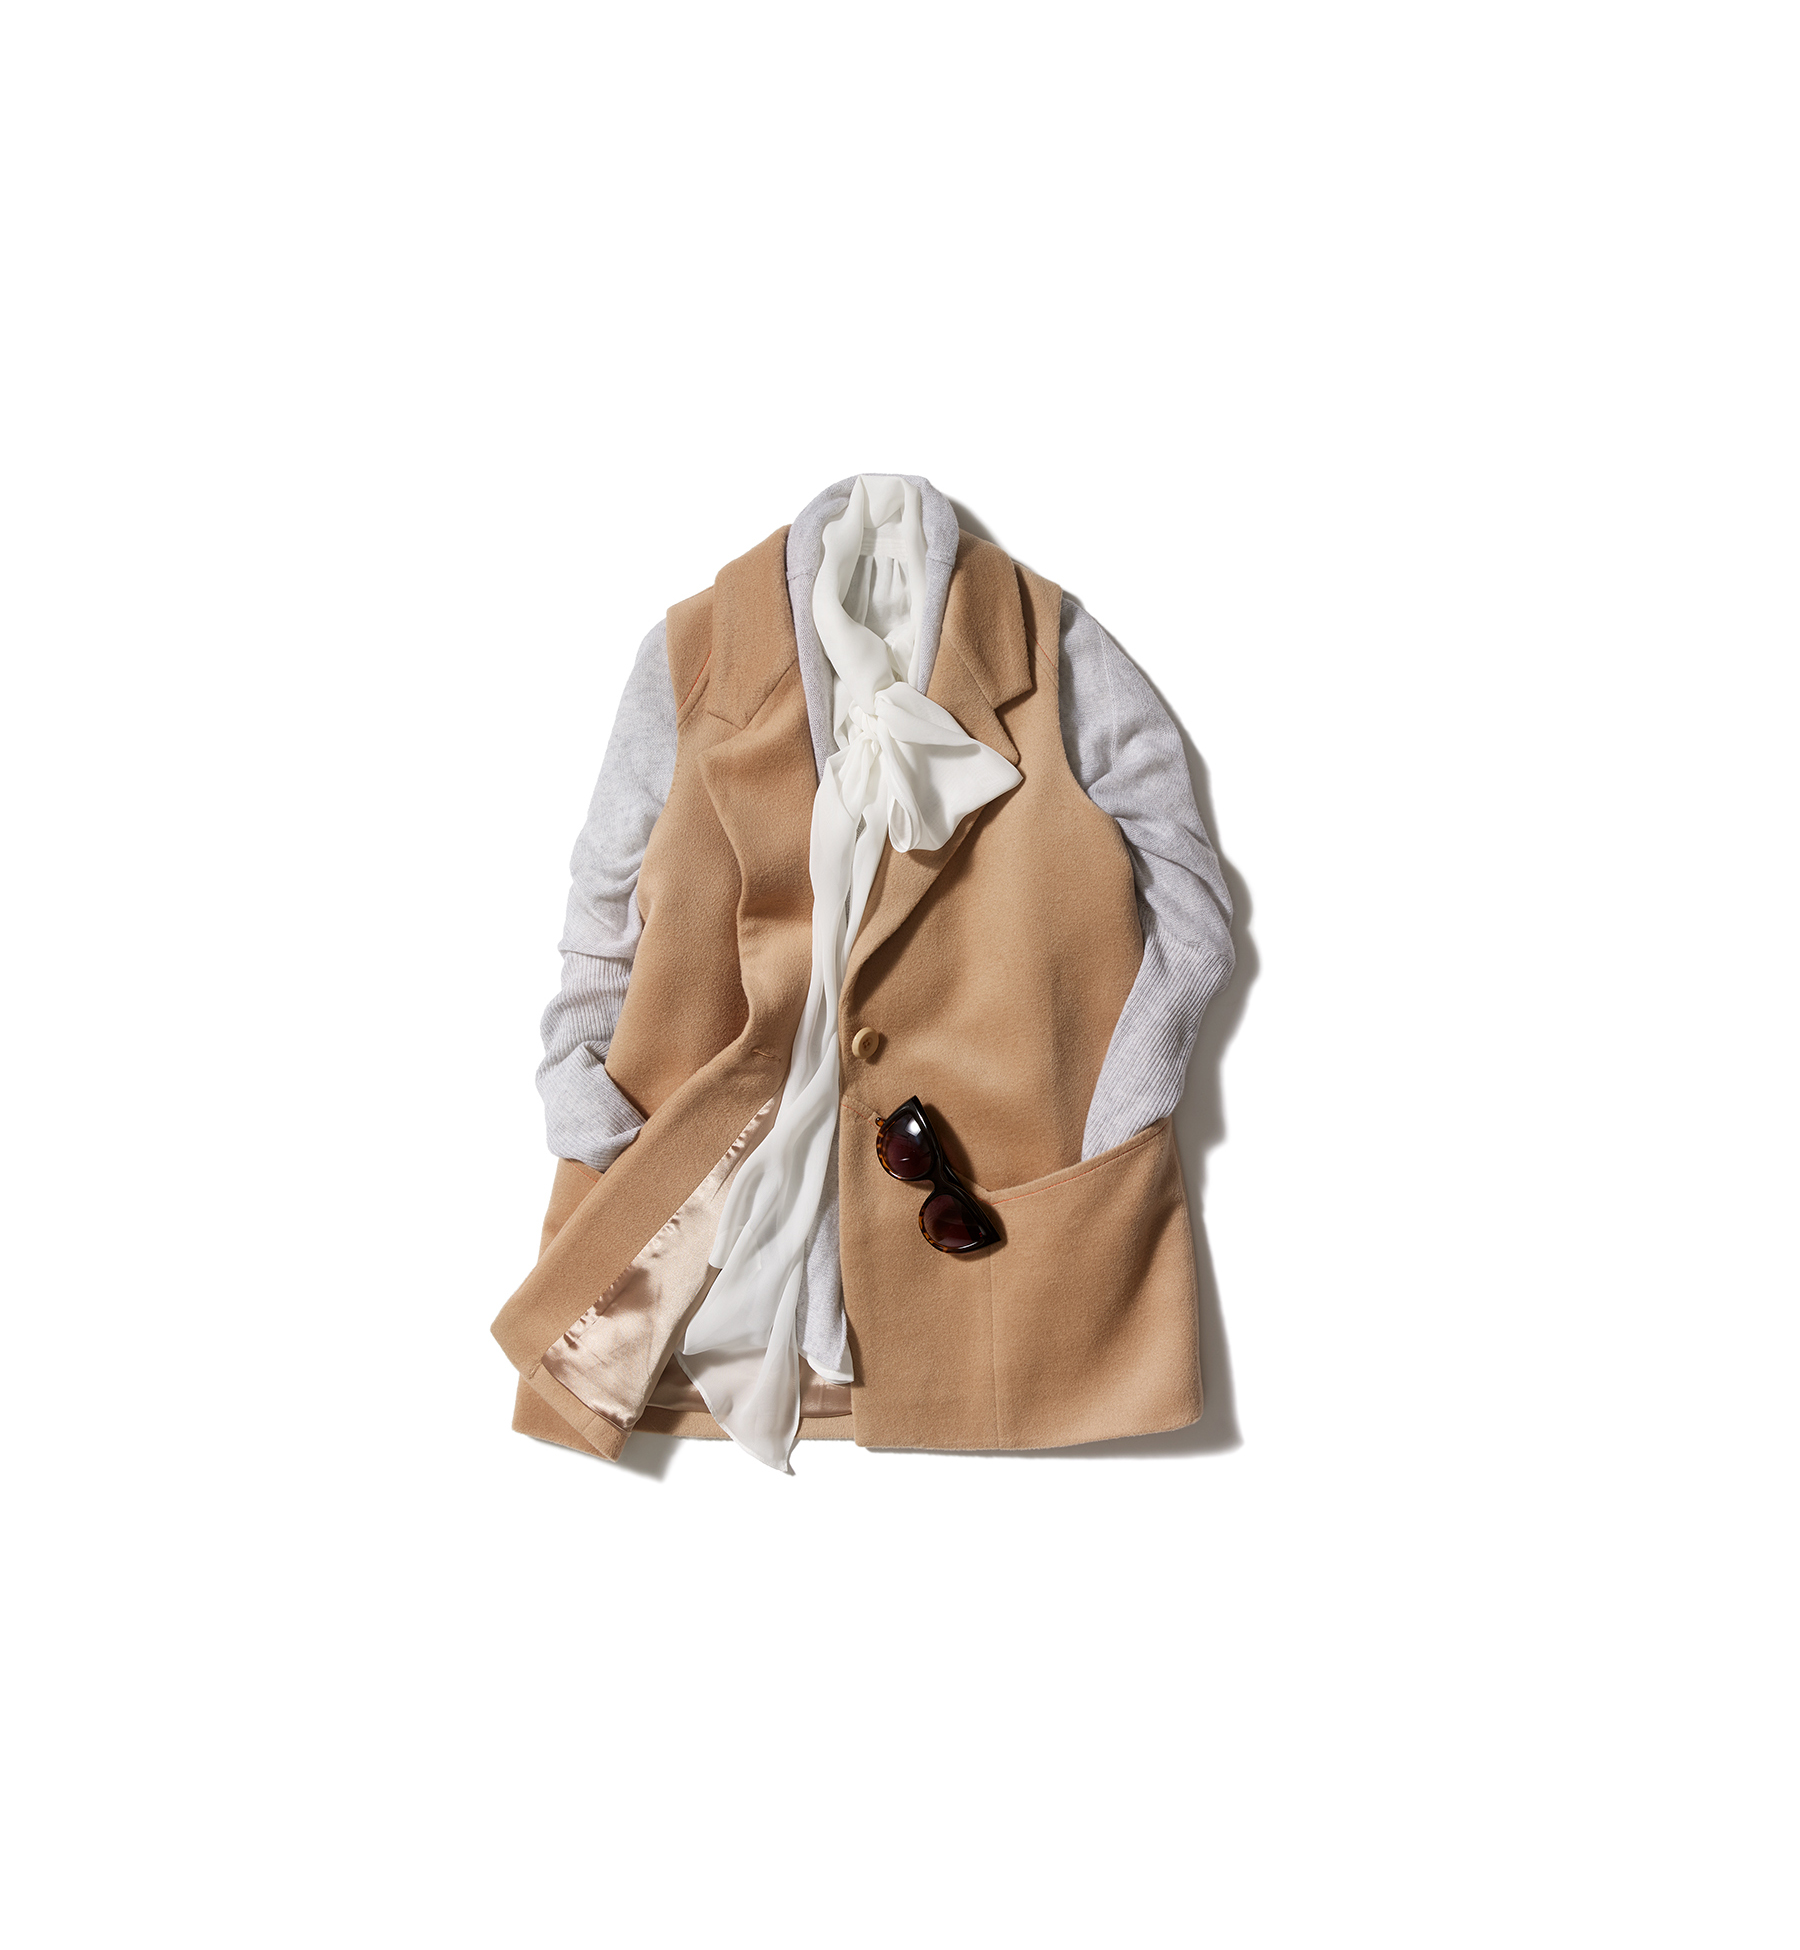 Vest with cardigan and blouse